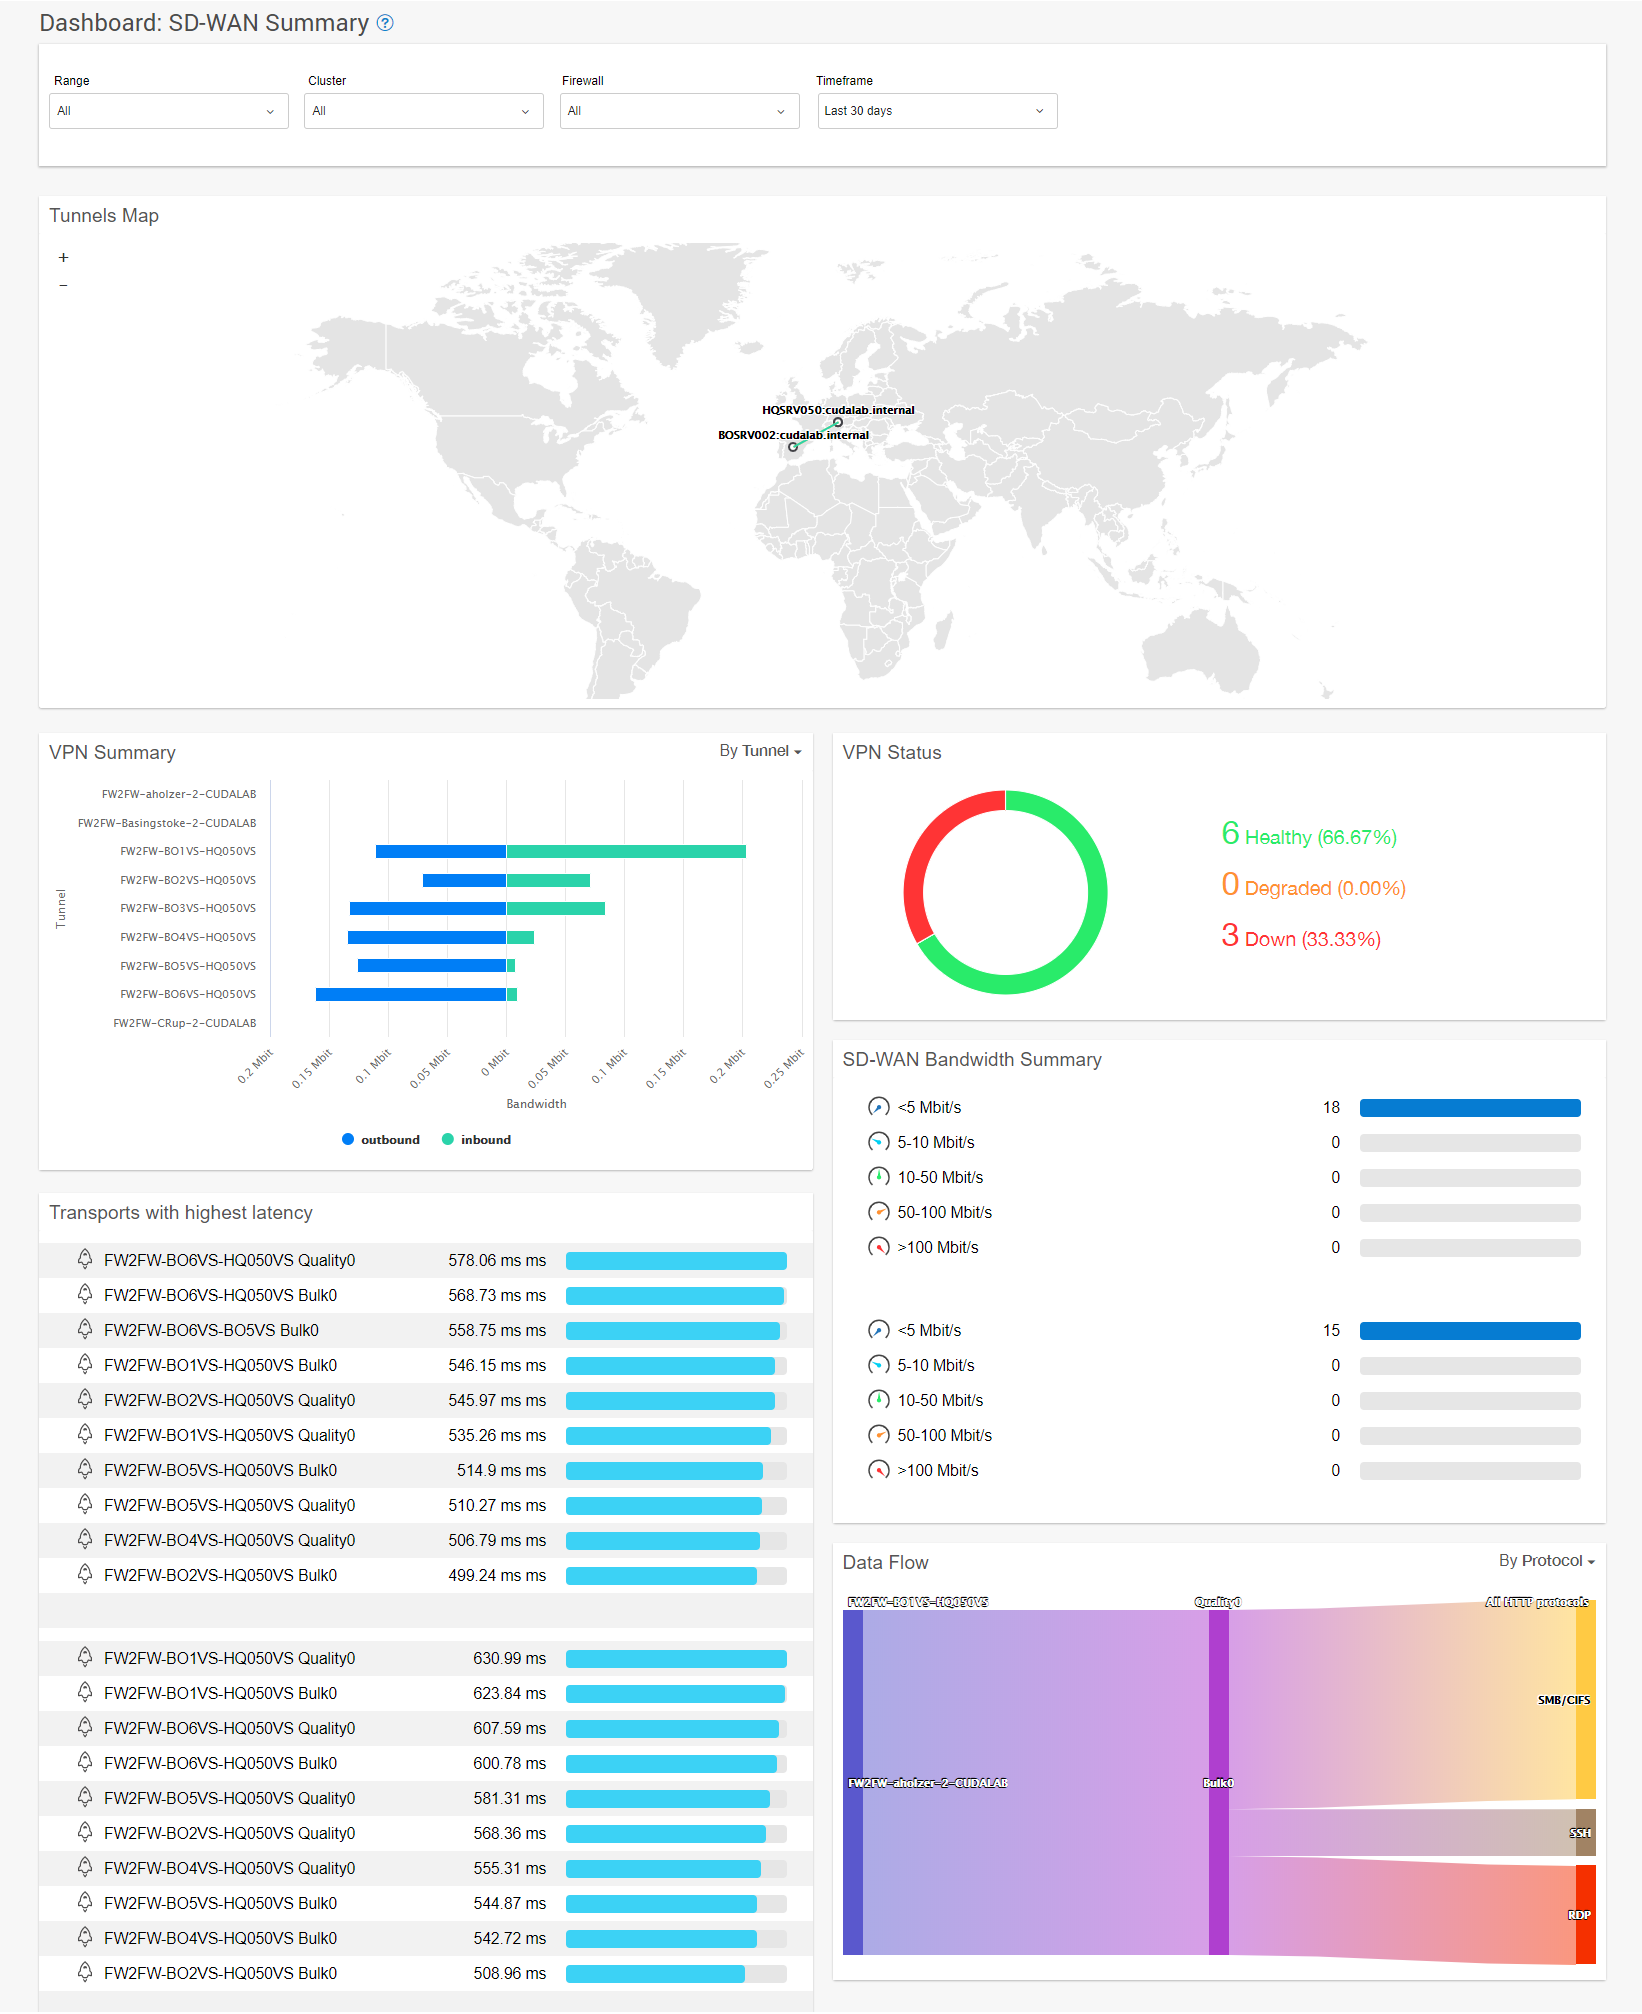 dashboard_sdwan_summary.png